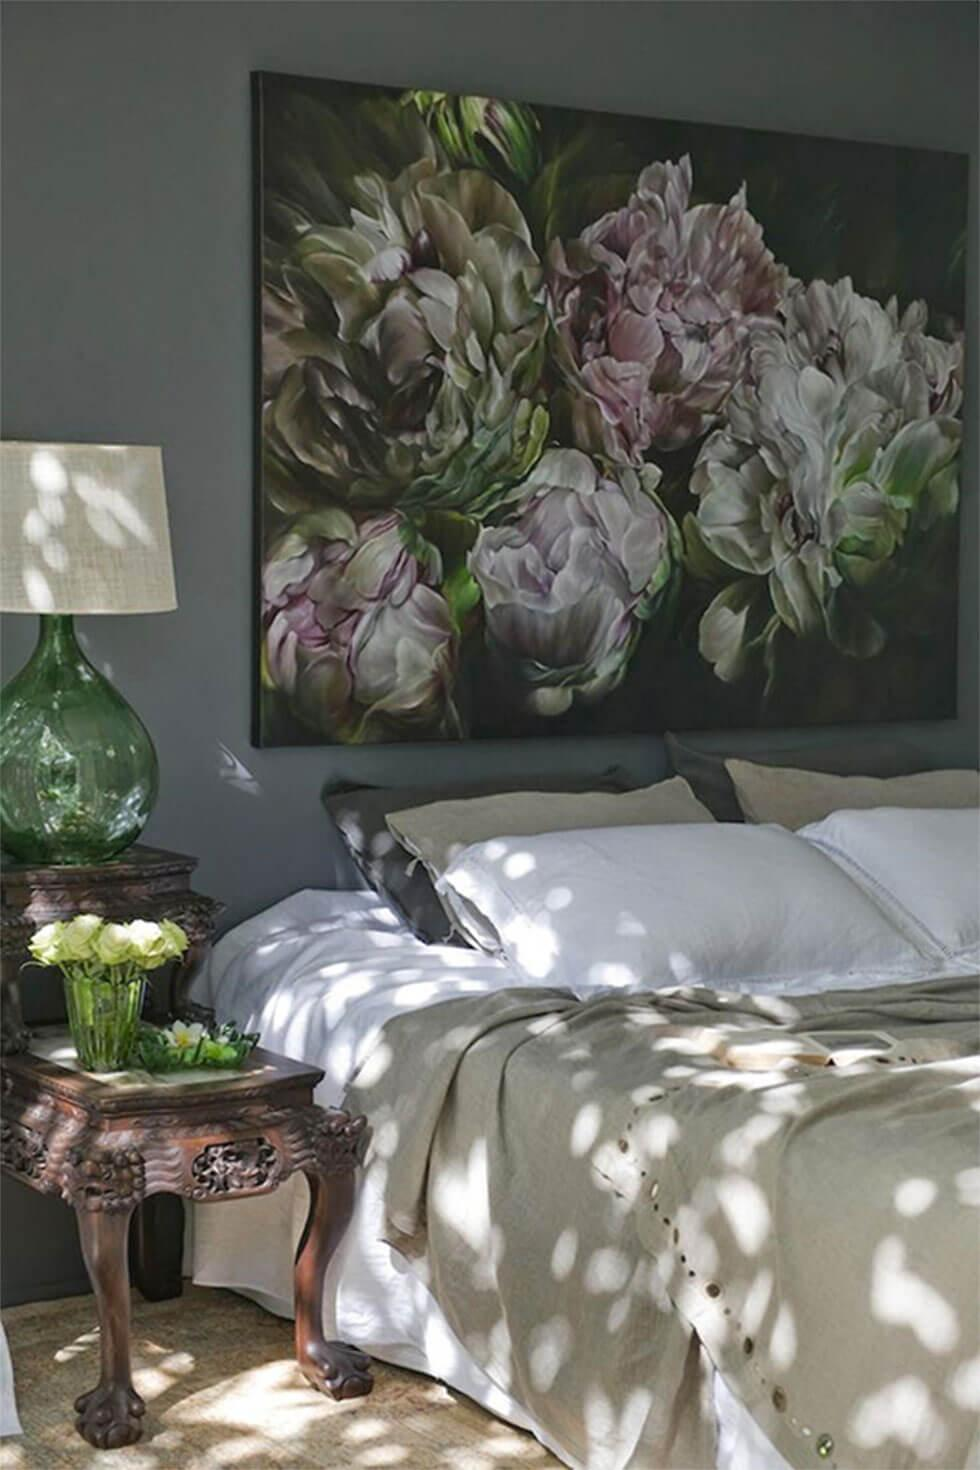 A bedroom wall with large statement artwork framed above the bed.